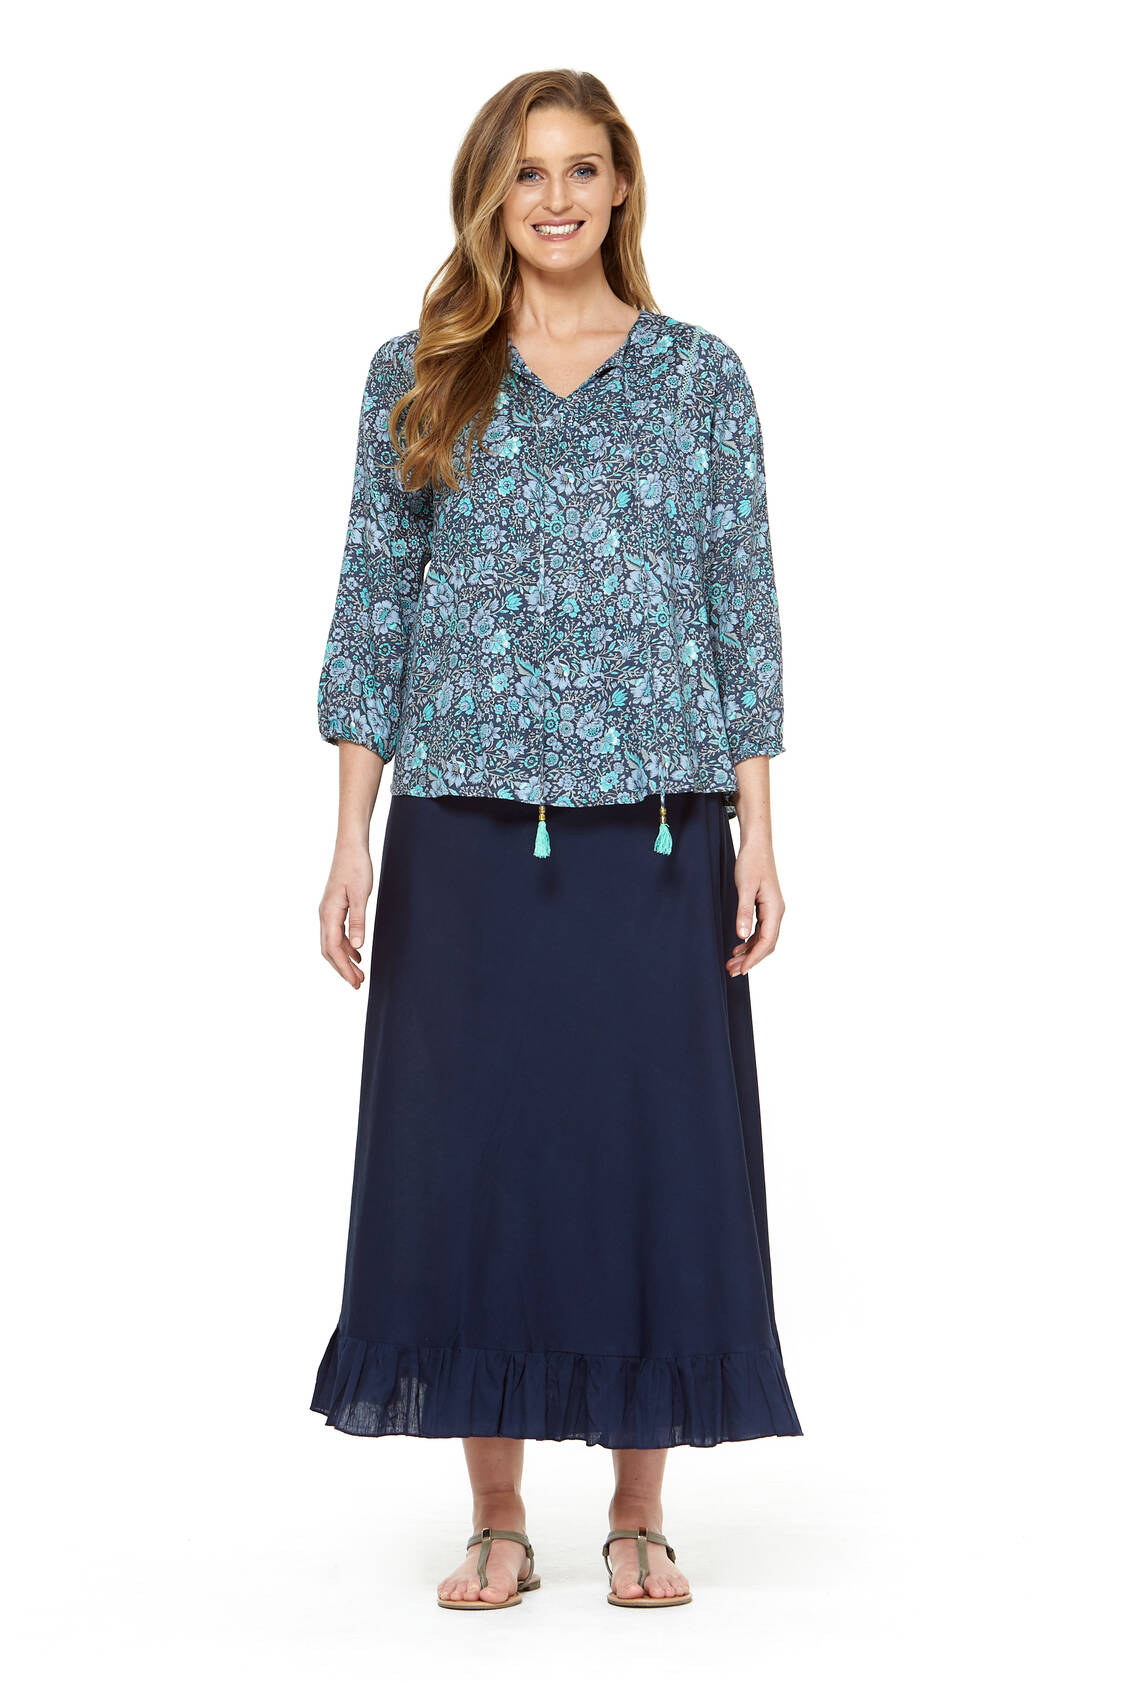 Madrid Wrap Linen Skirt - Navy Blue